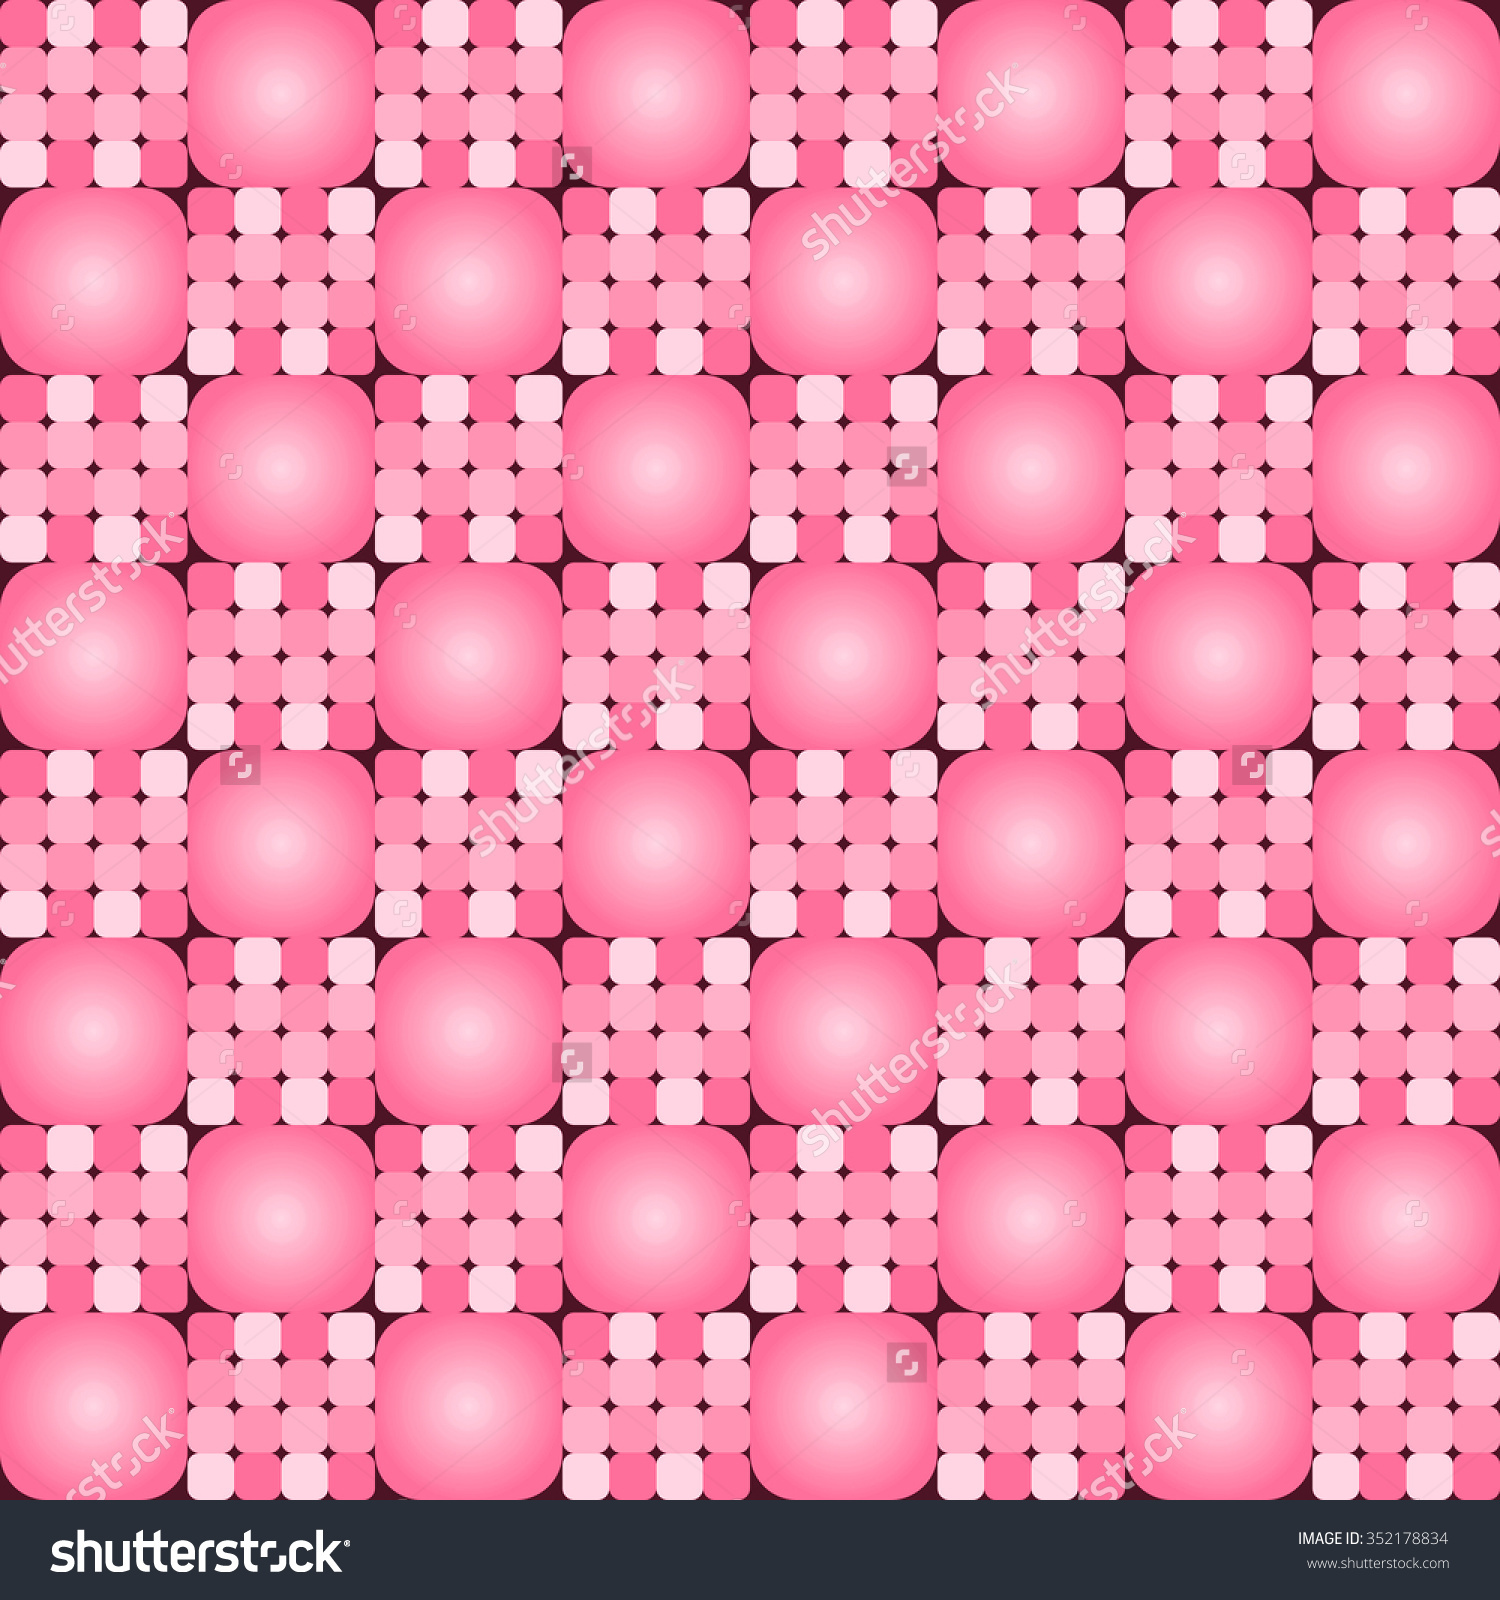 Pink Tile Wallpaper